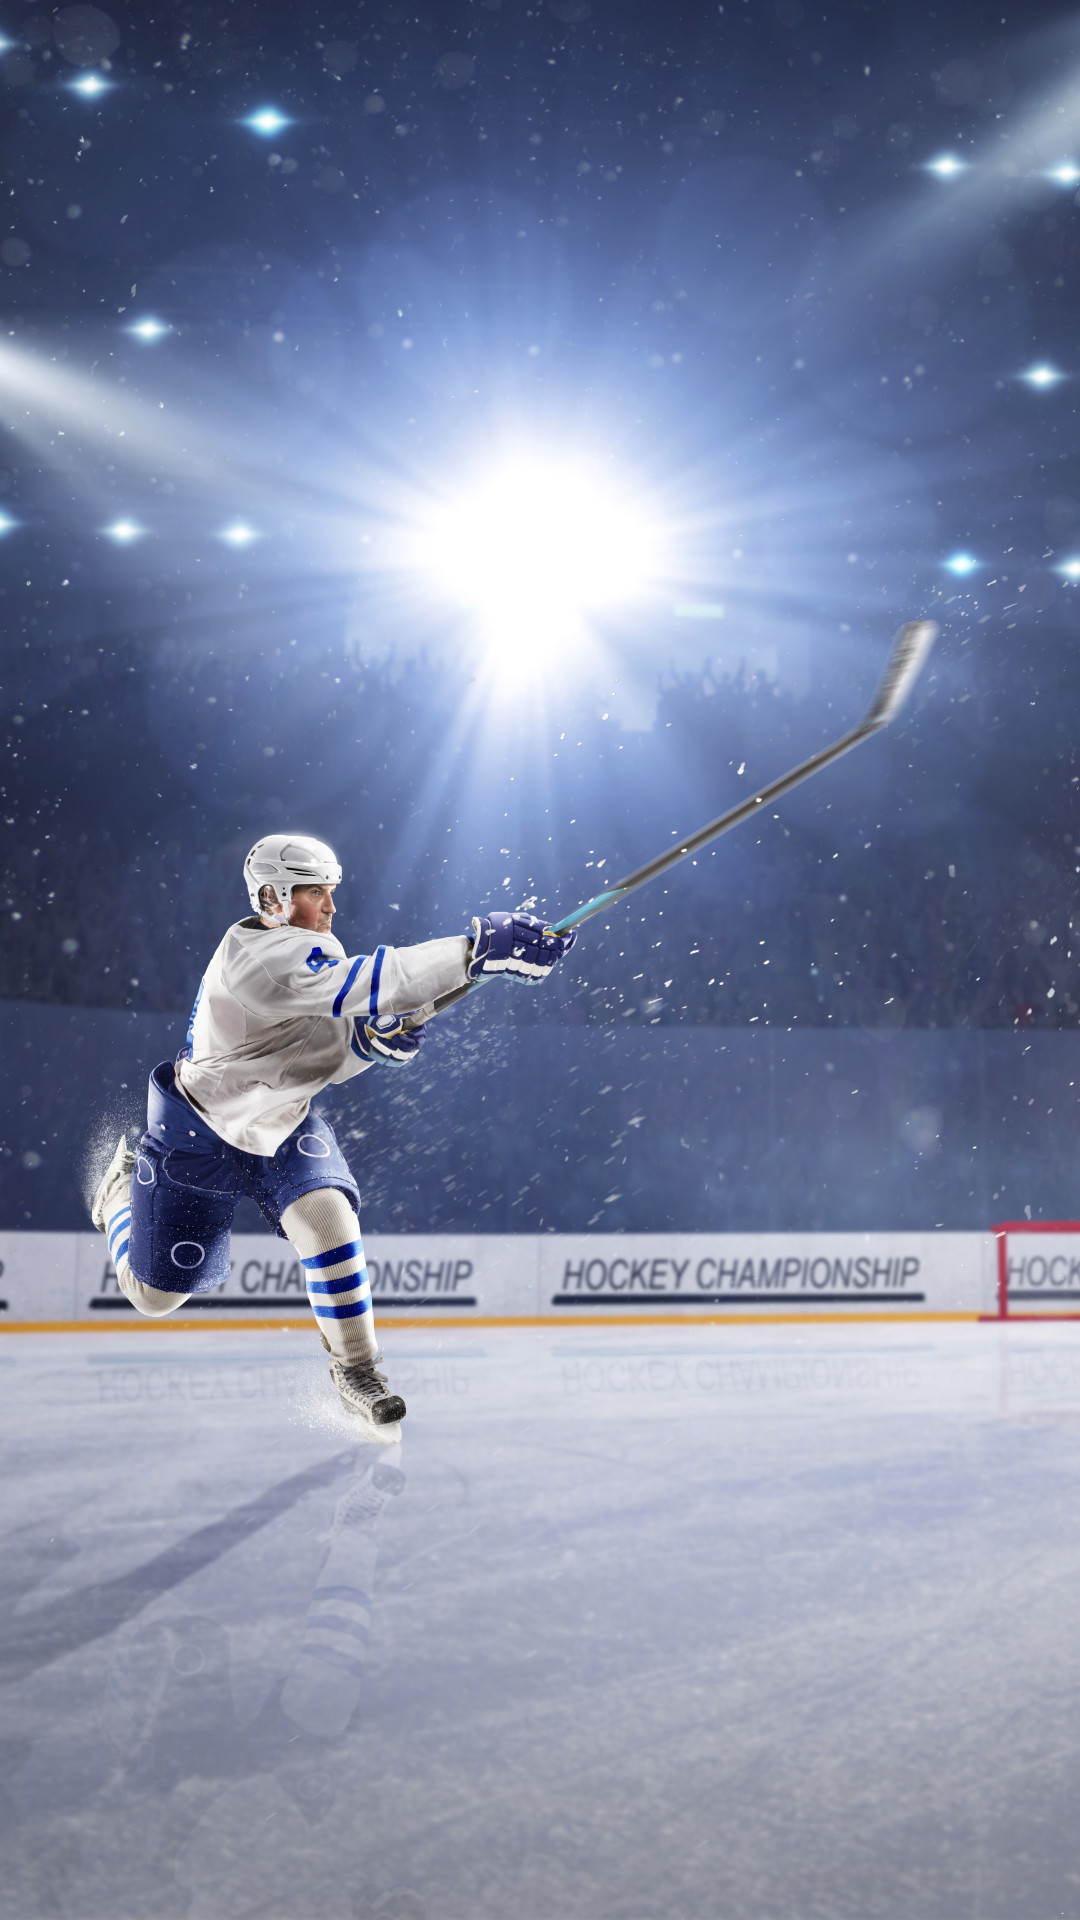 Nhl Iphone Wallpaper Ice Hockey Wallpapers 66 Images